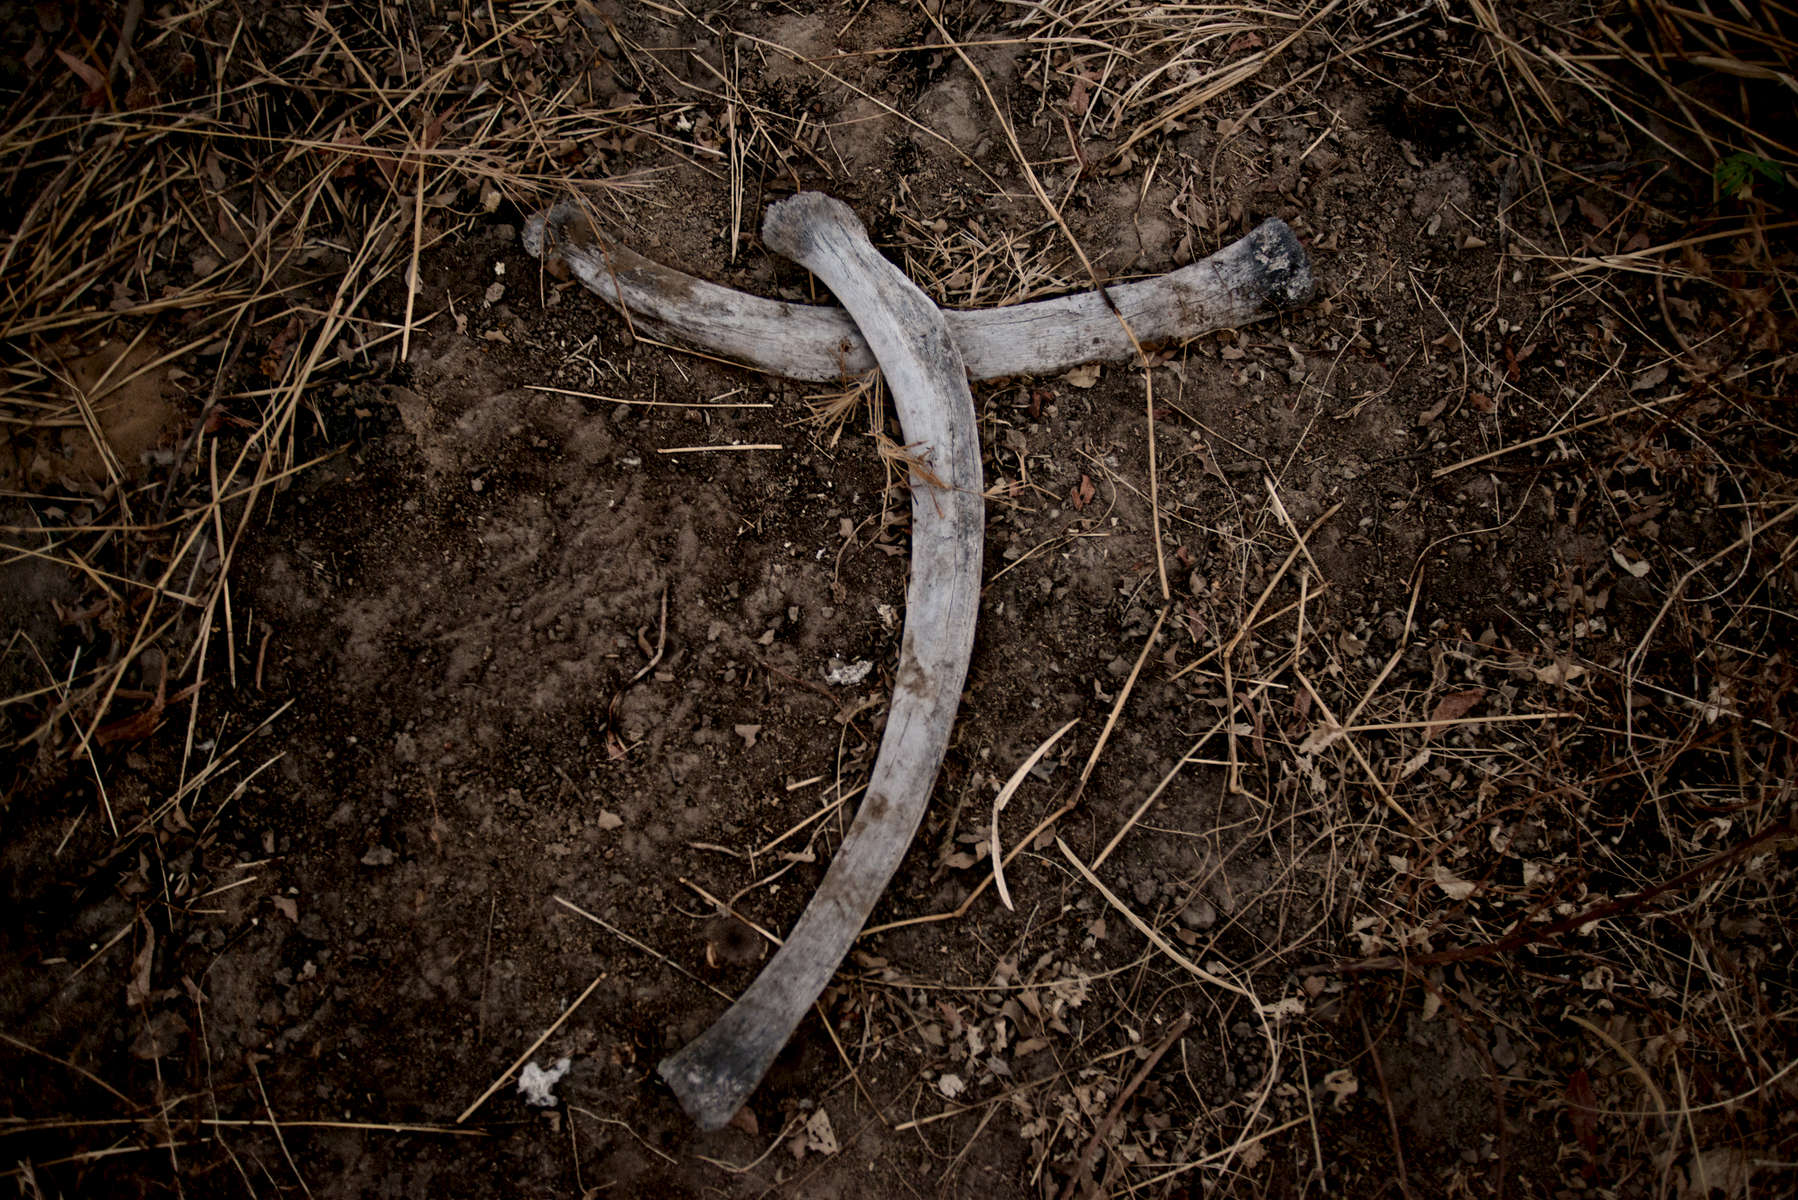 In March 2013 86 elephants, several of whom were pregnant, were reported to have been killed by poachers near Fianga close to the border of Cameroon. Elephant bones are scattered across the massacre.